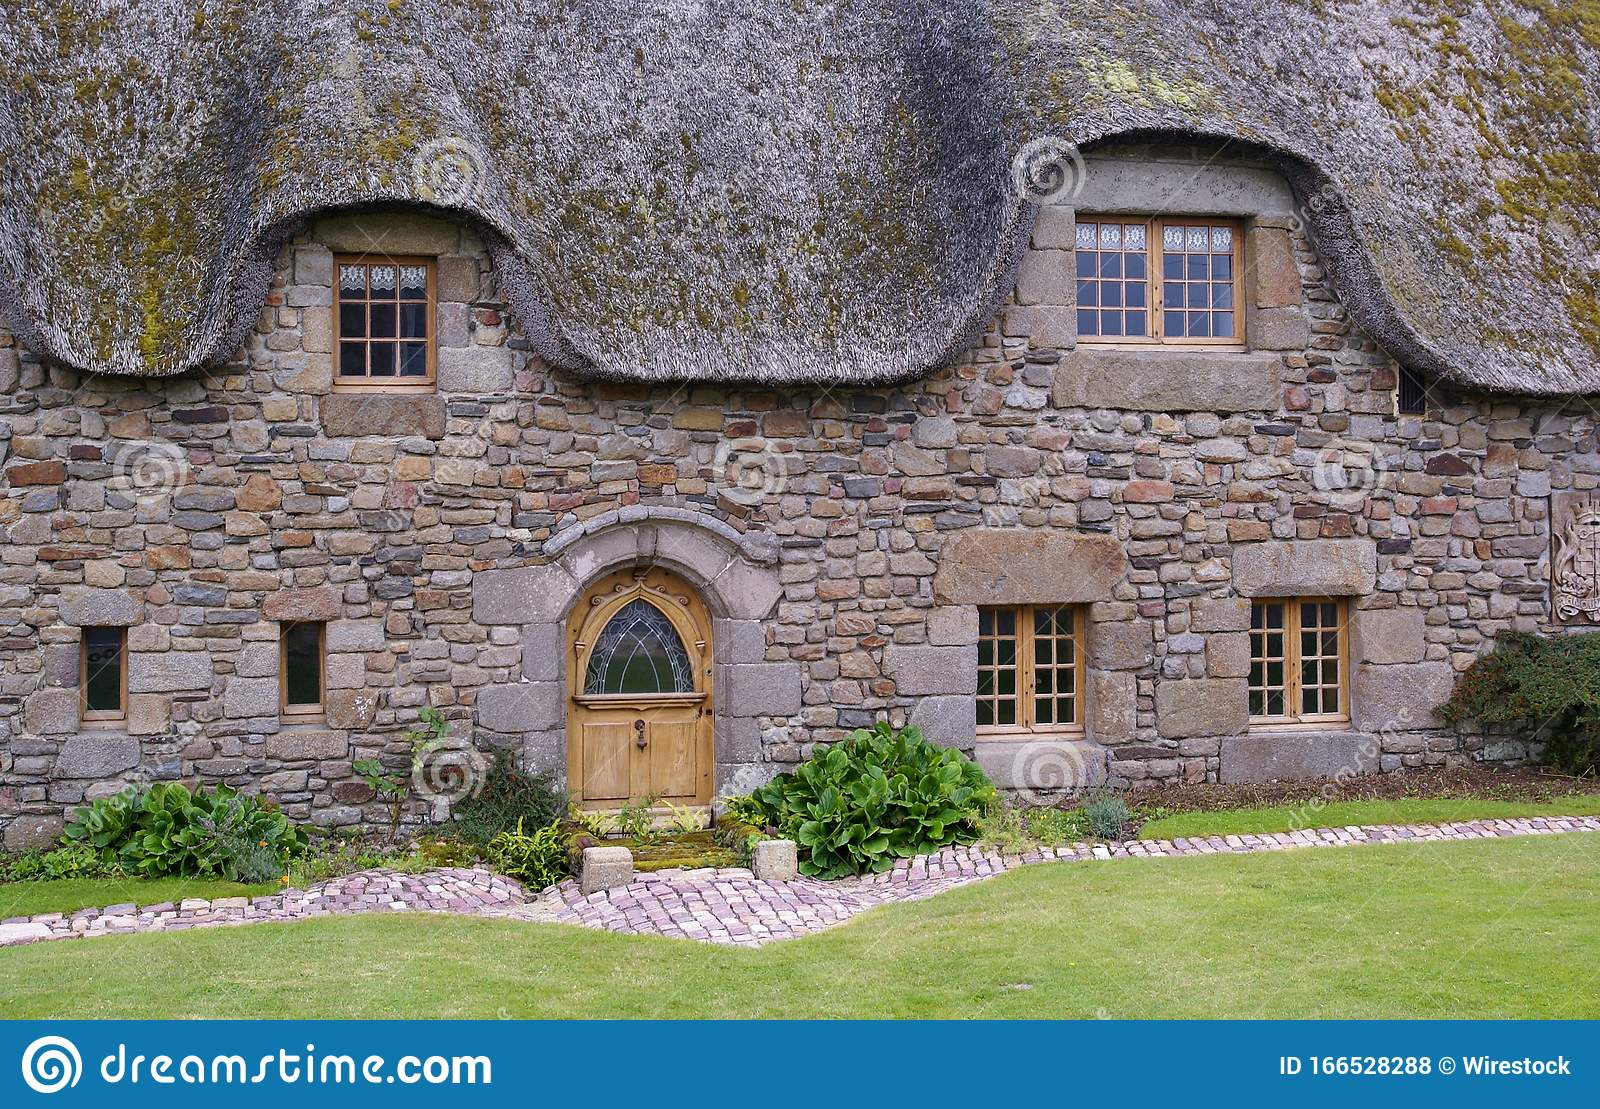 Entrance Of An Ancient Farmhouse With Wooden Doors In Normandy France Stock Photo Image Of Field French 166528288